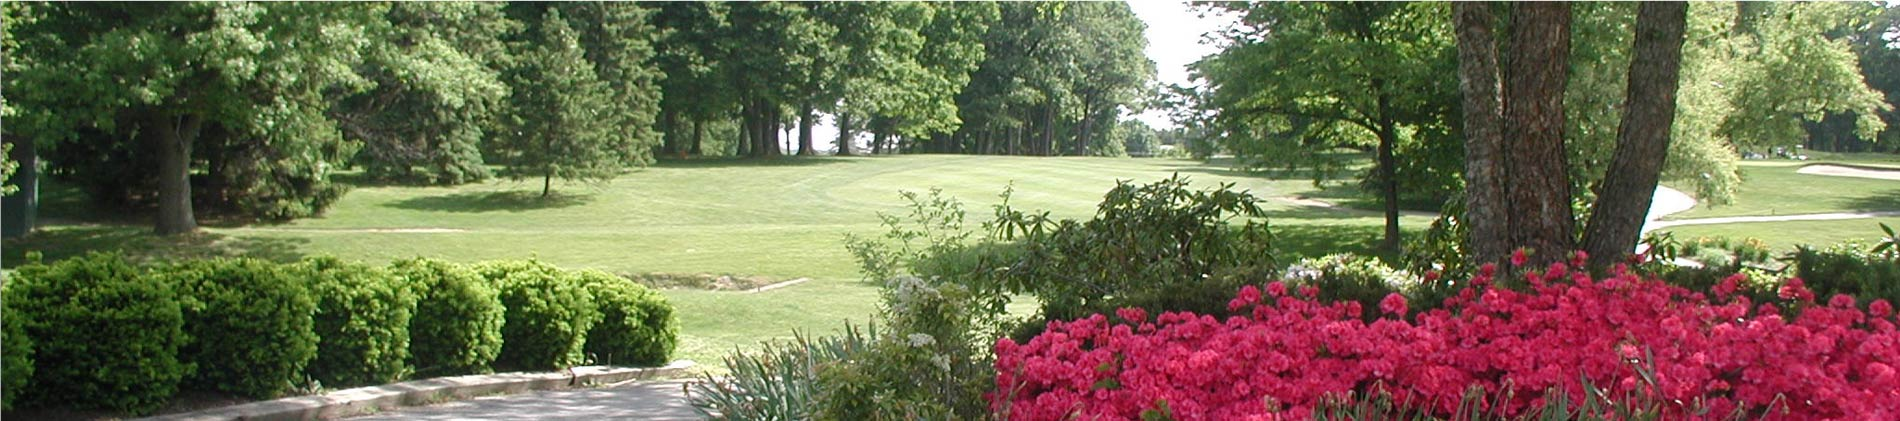 Plymouth Country Club golf course